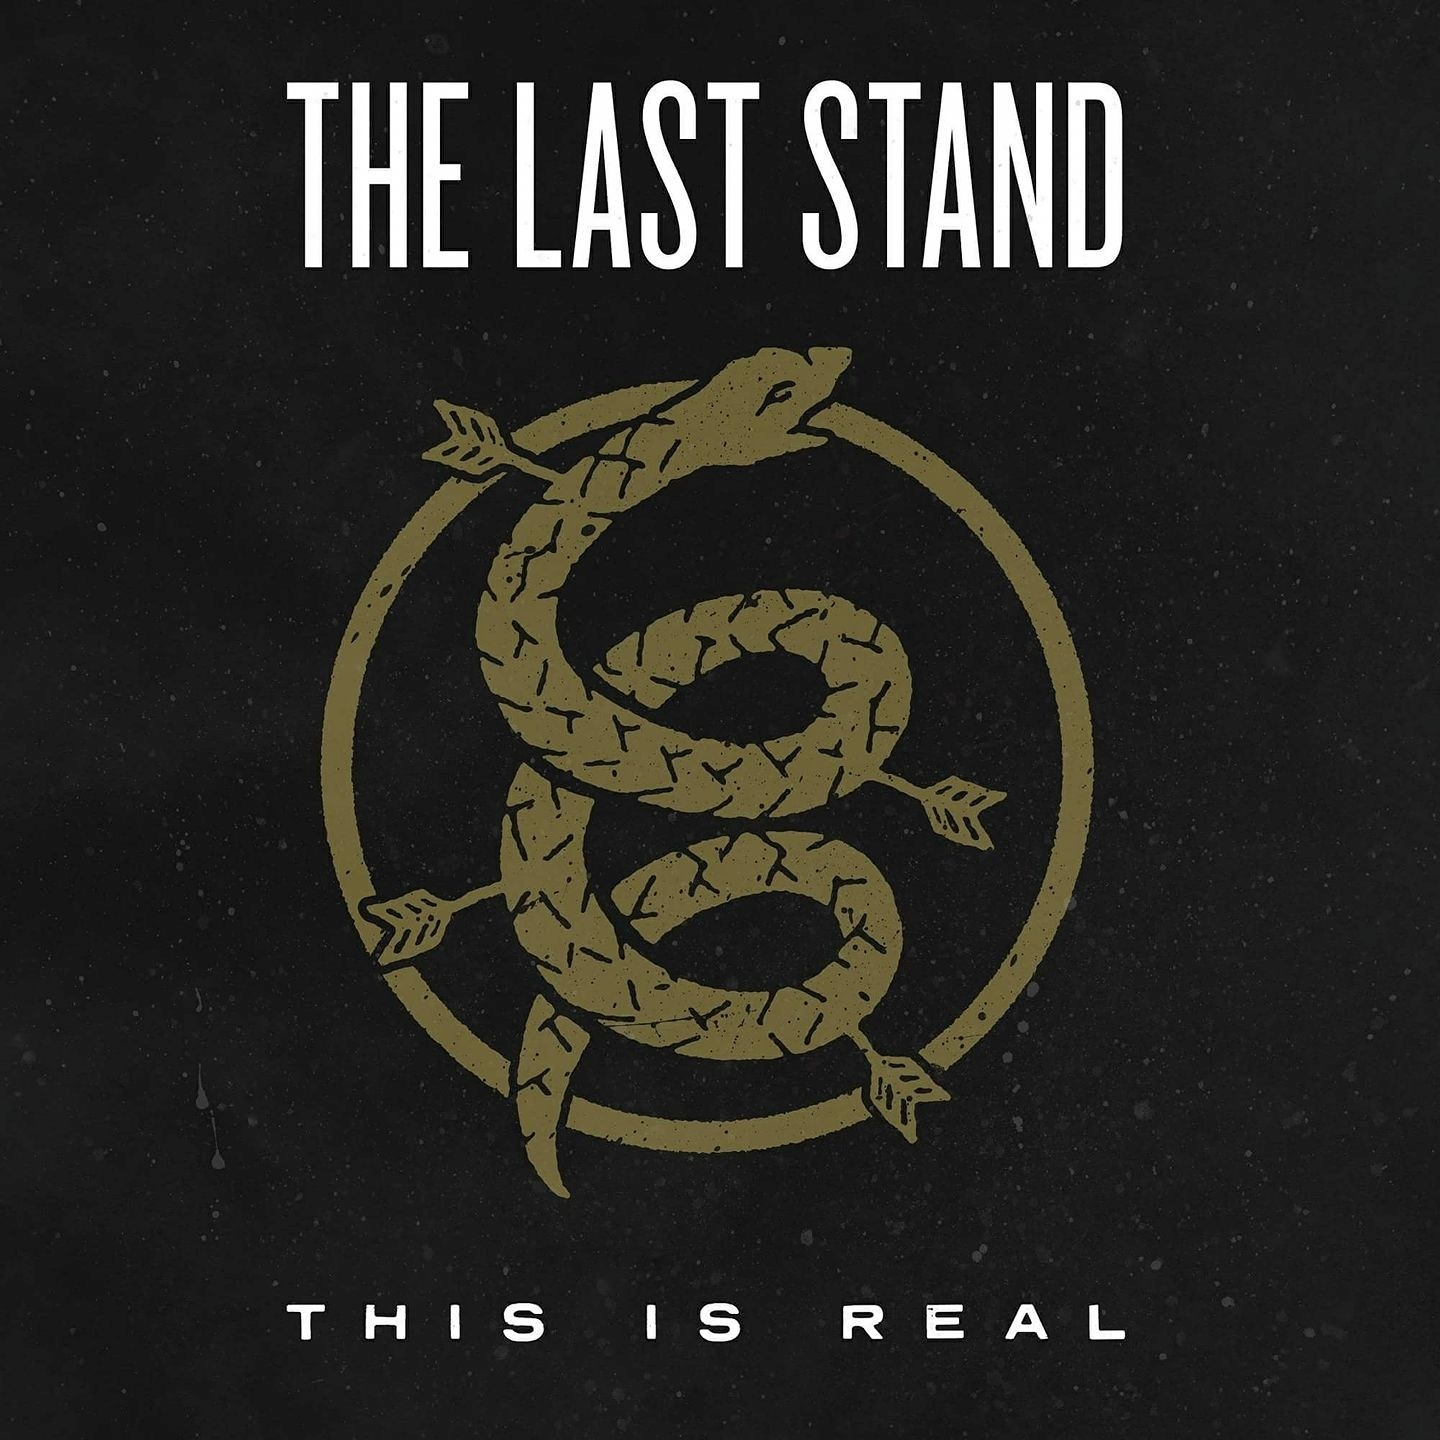 The Last Stand: This is Real